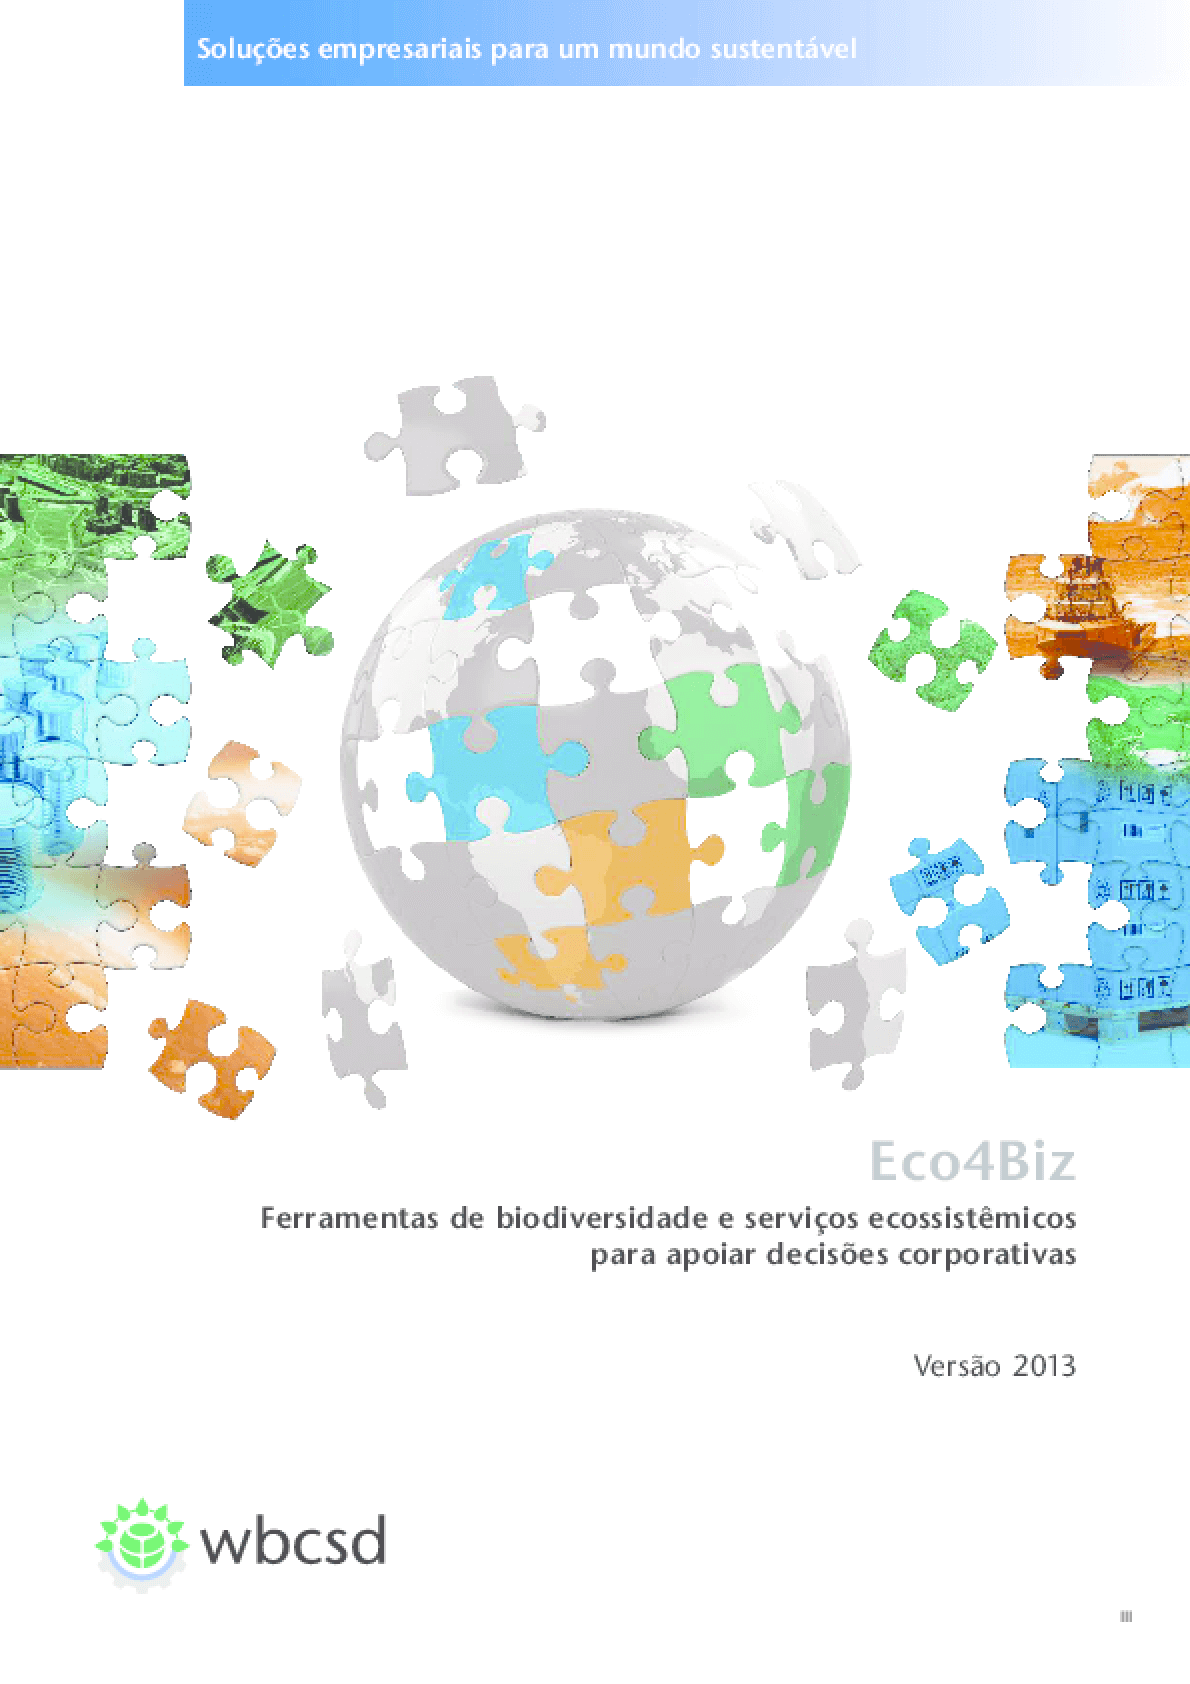 Eco4 Biz: Ecosystem Services and Biodiversity Tools to Support Business Decision-Making